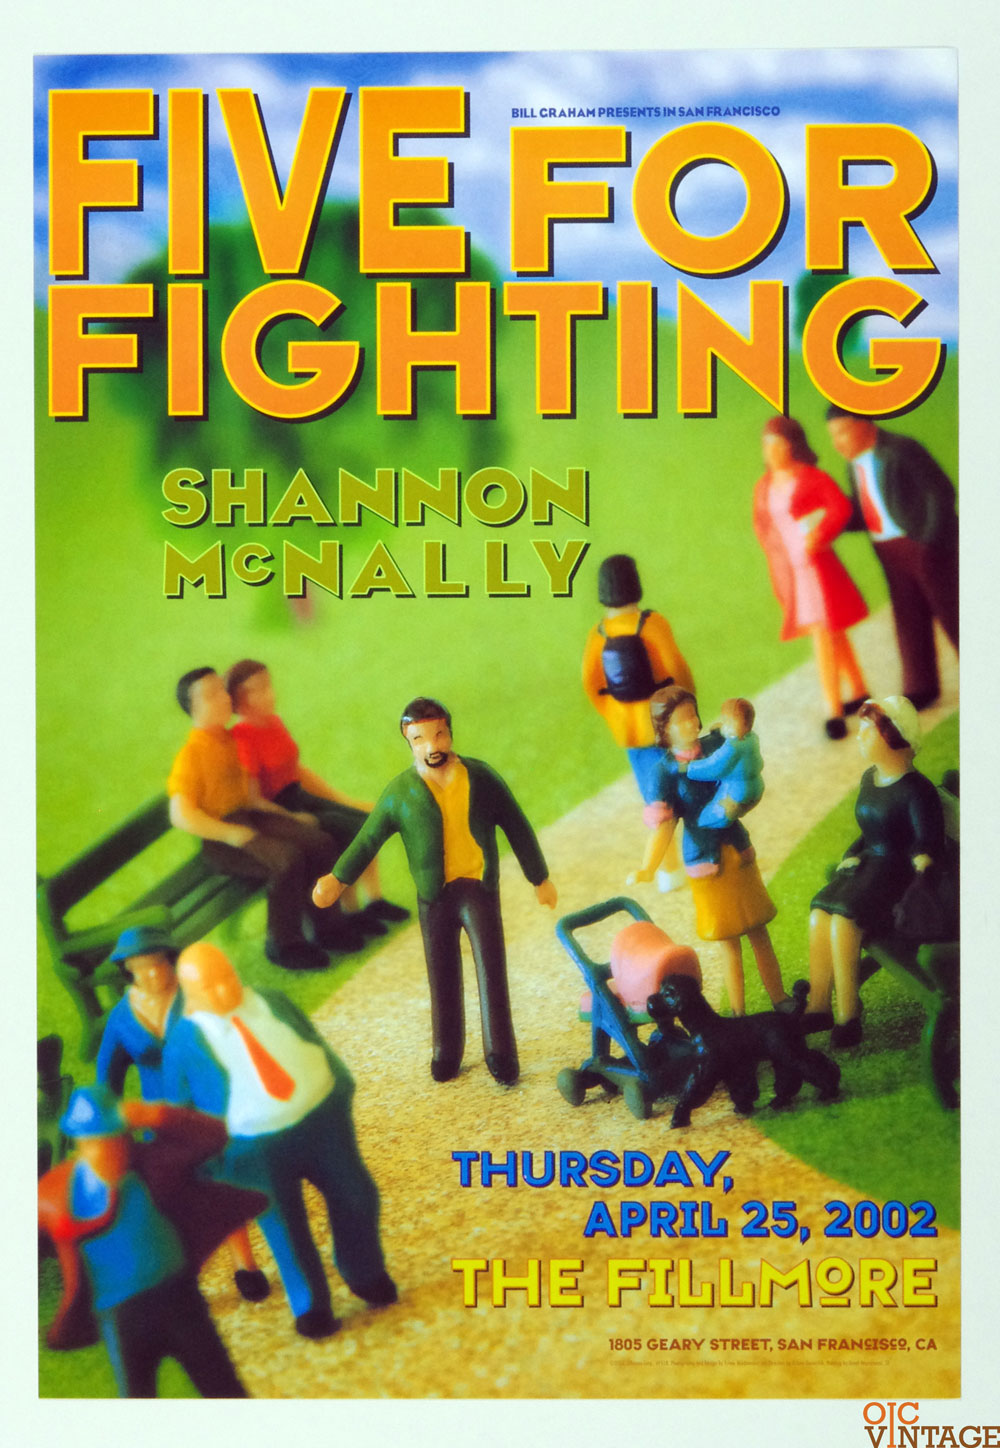 Five for Fighting Shanon McNally Poster 2002 Apr 25 New Fillmore